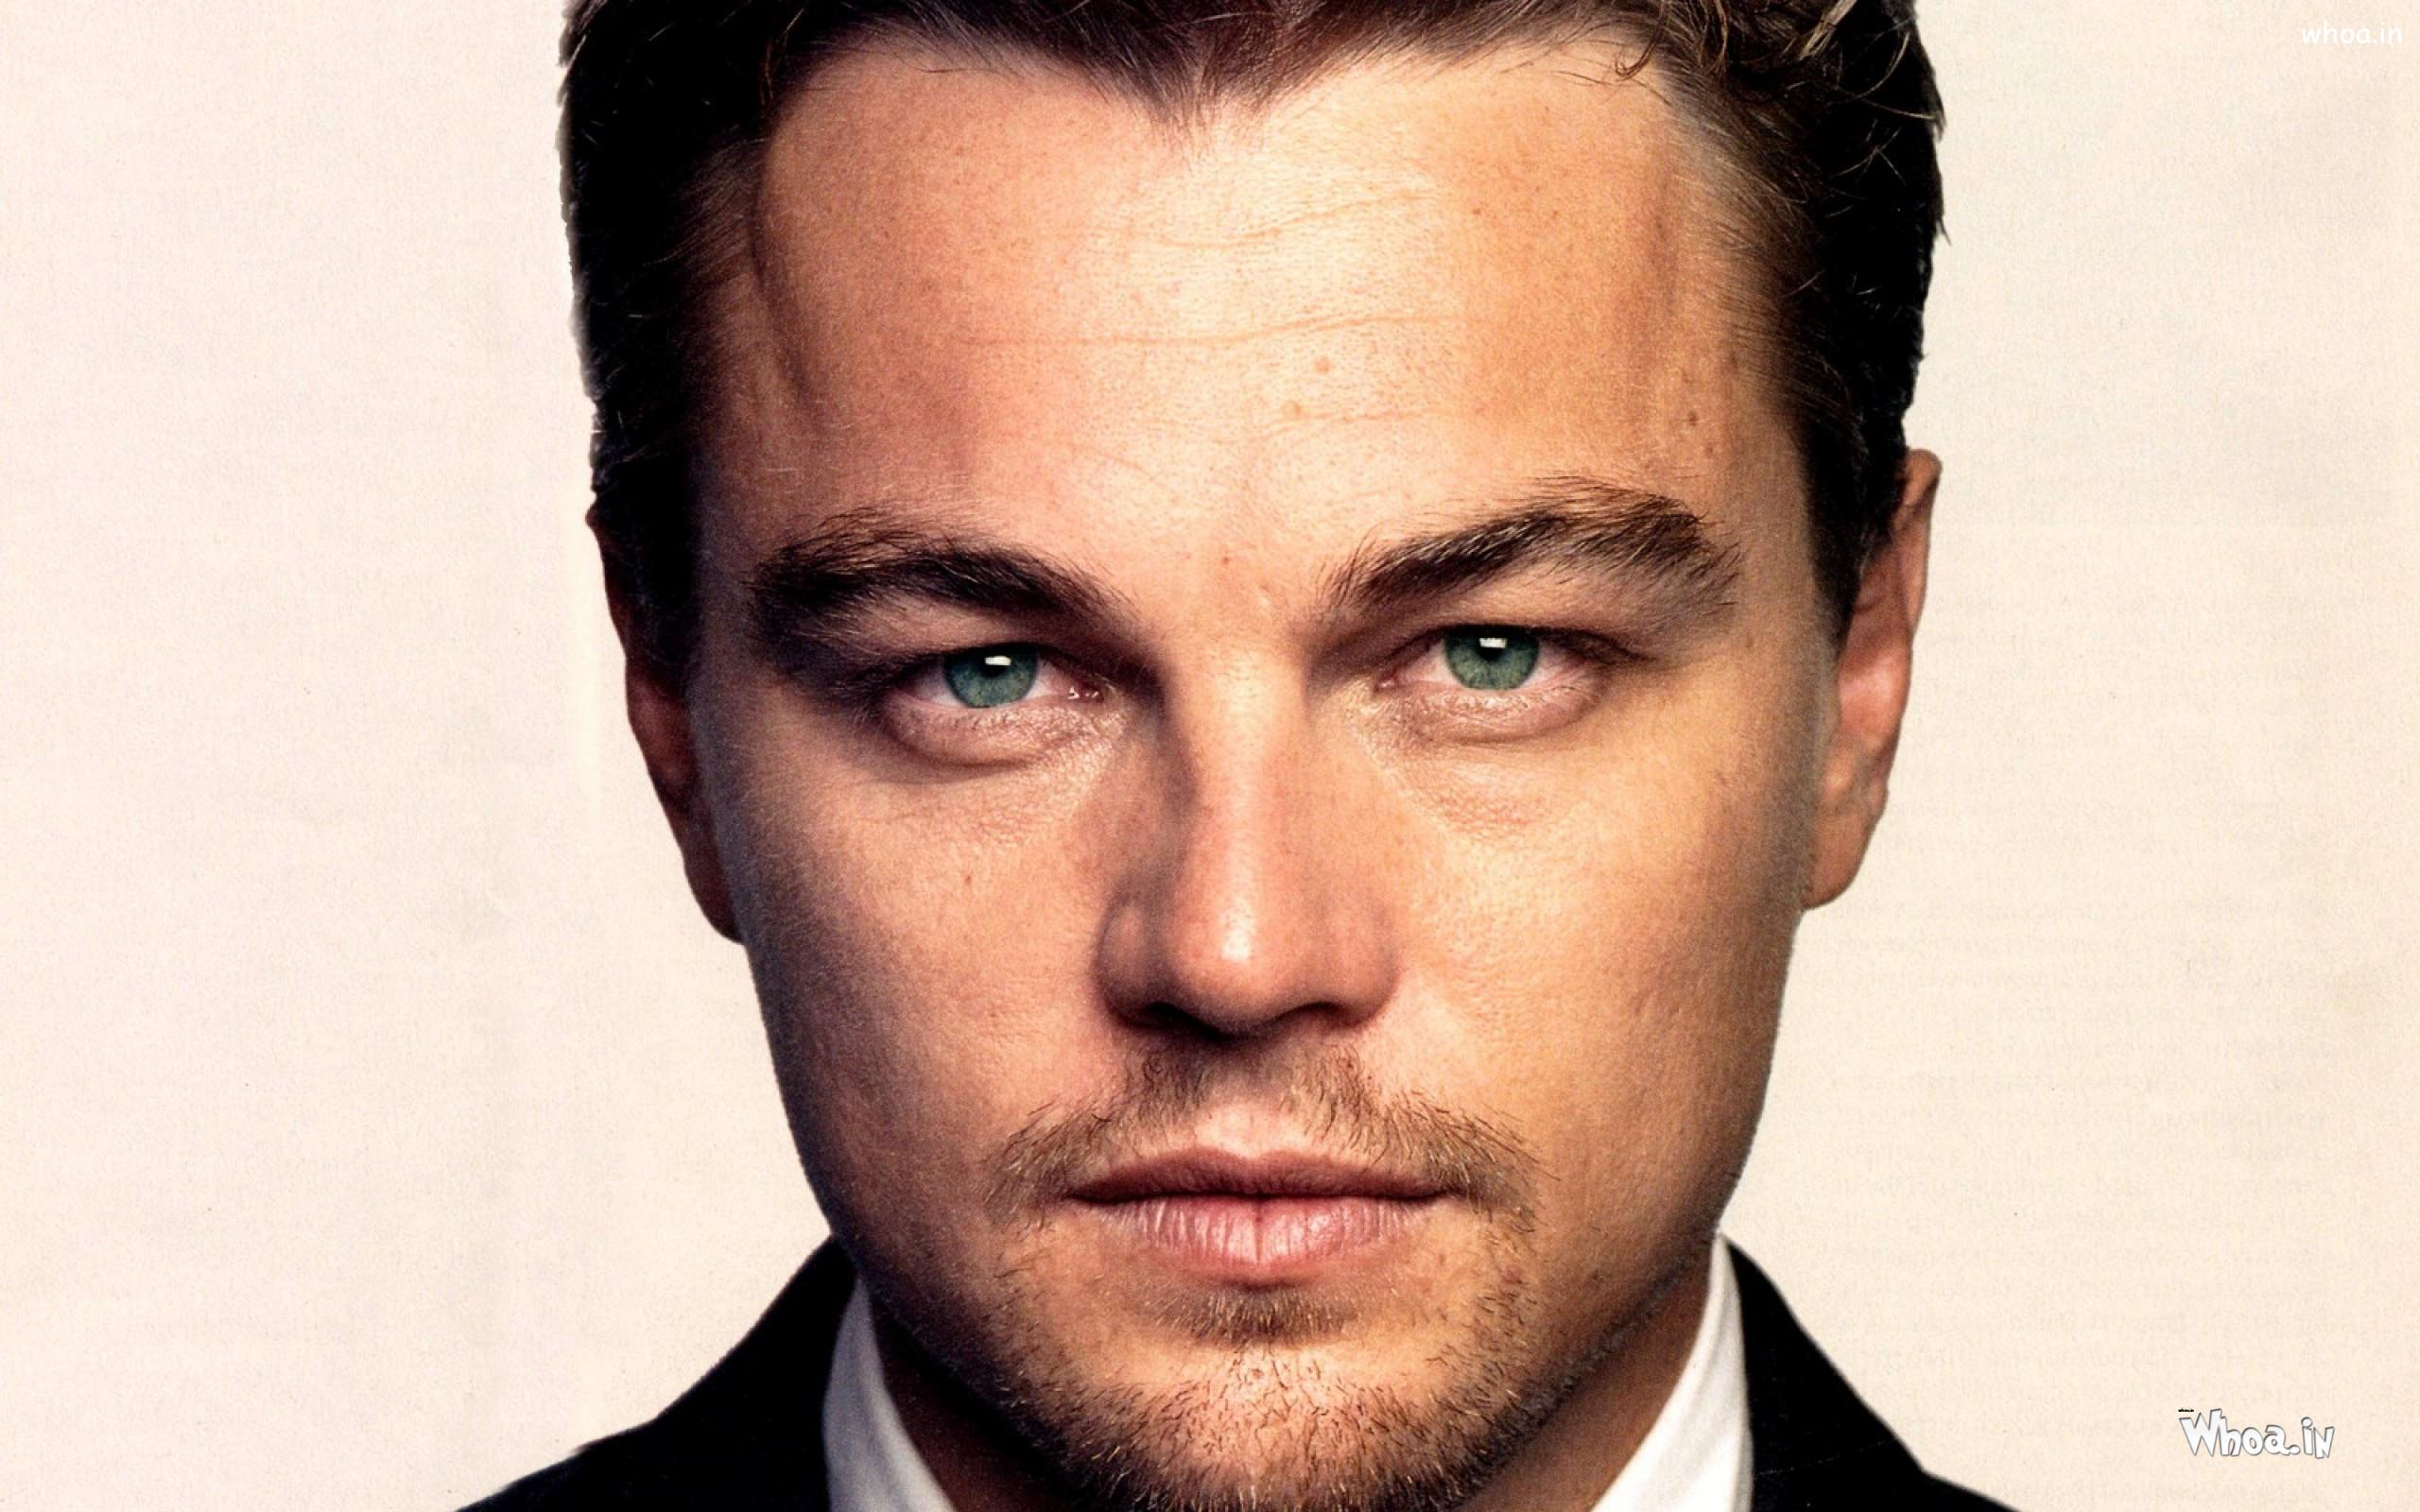 leonardo dicaprio face closeup hd wallpaper